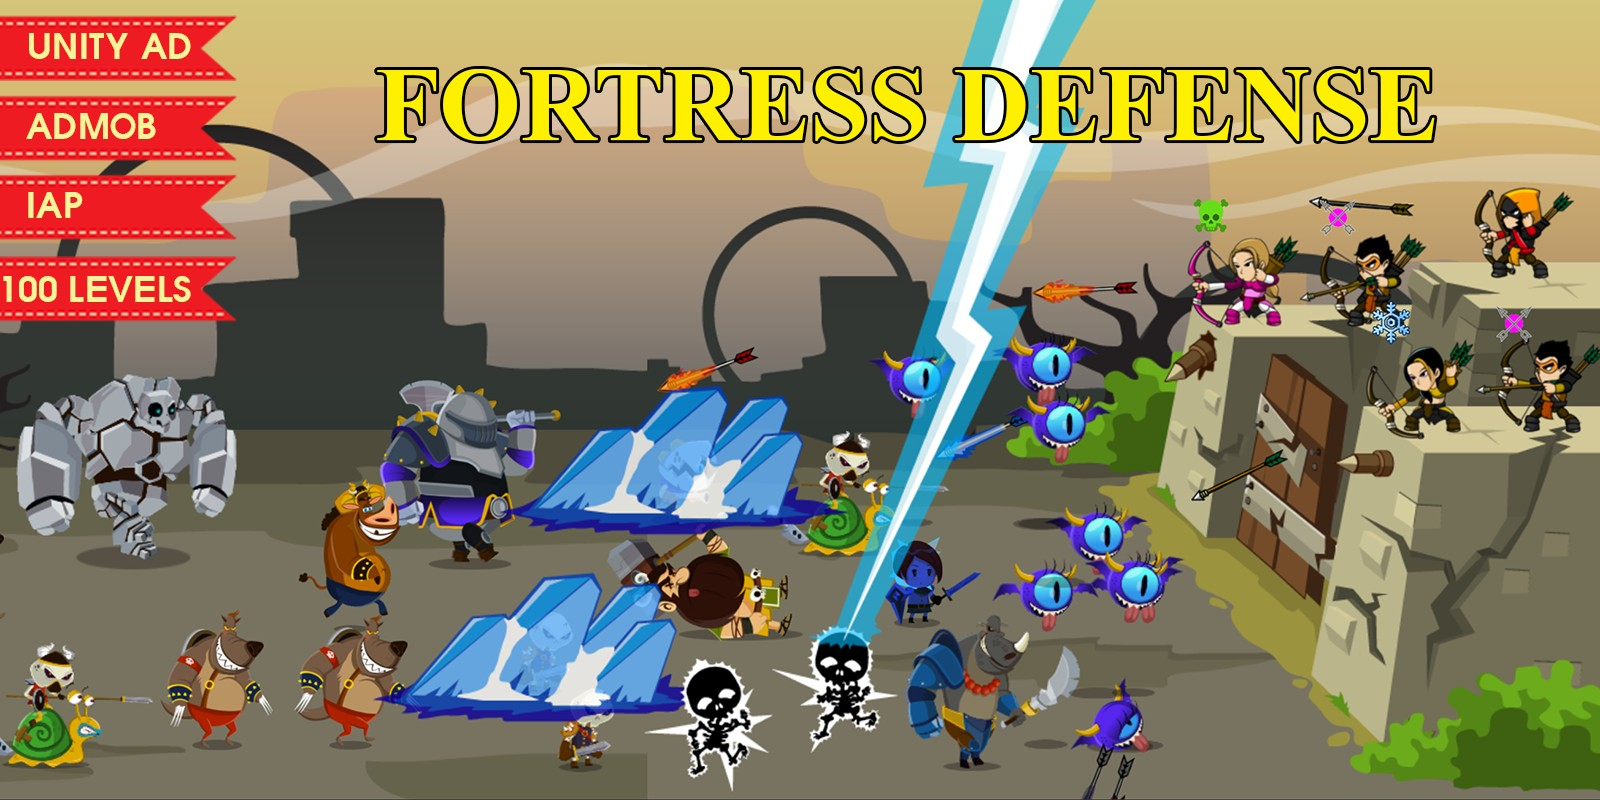 Fortress Defence - Unity Source Code